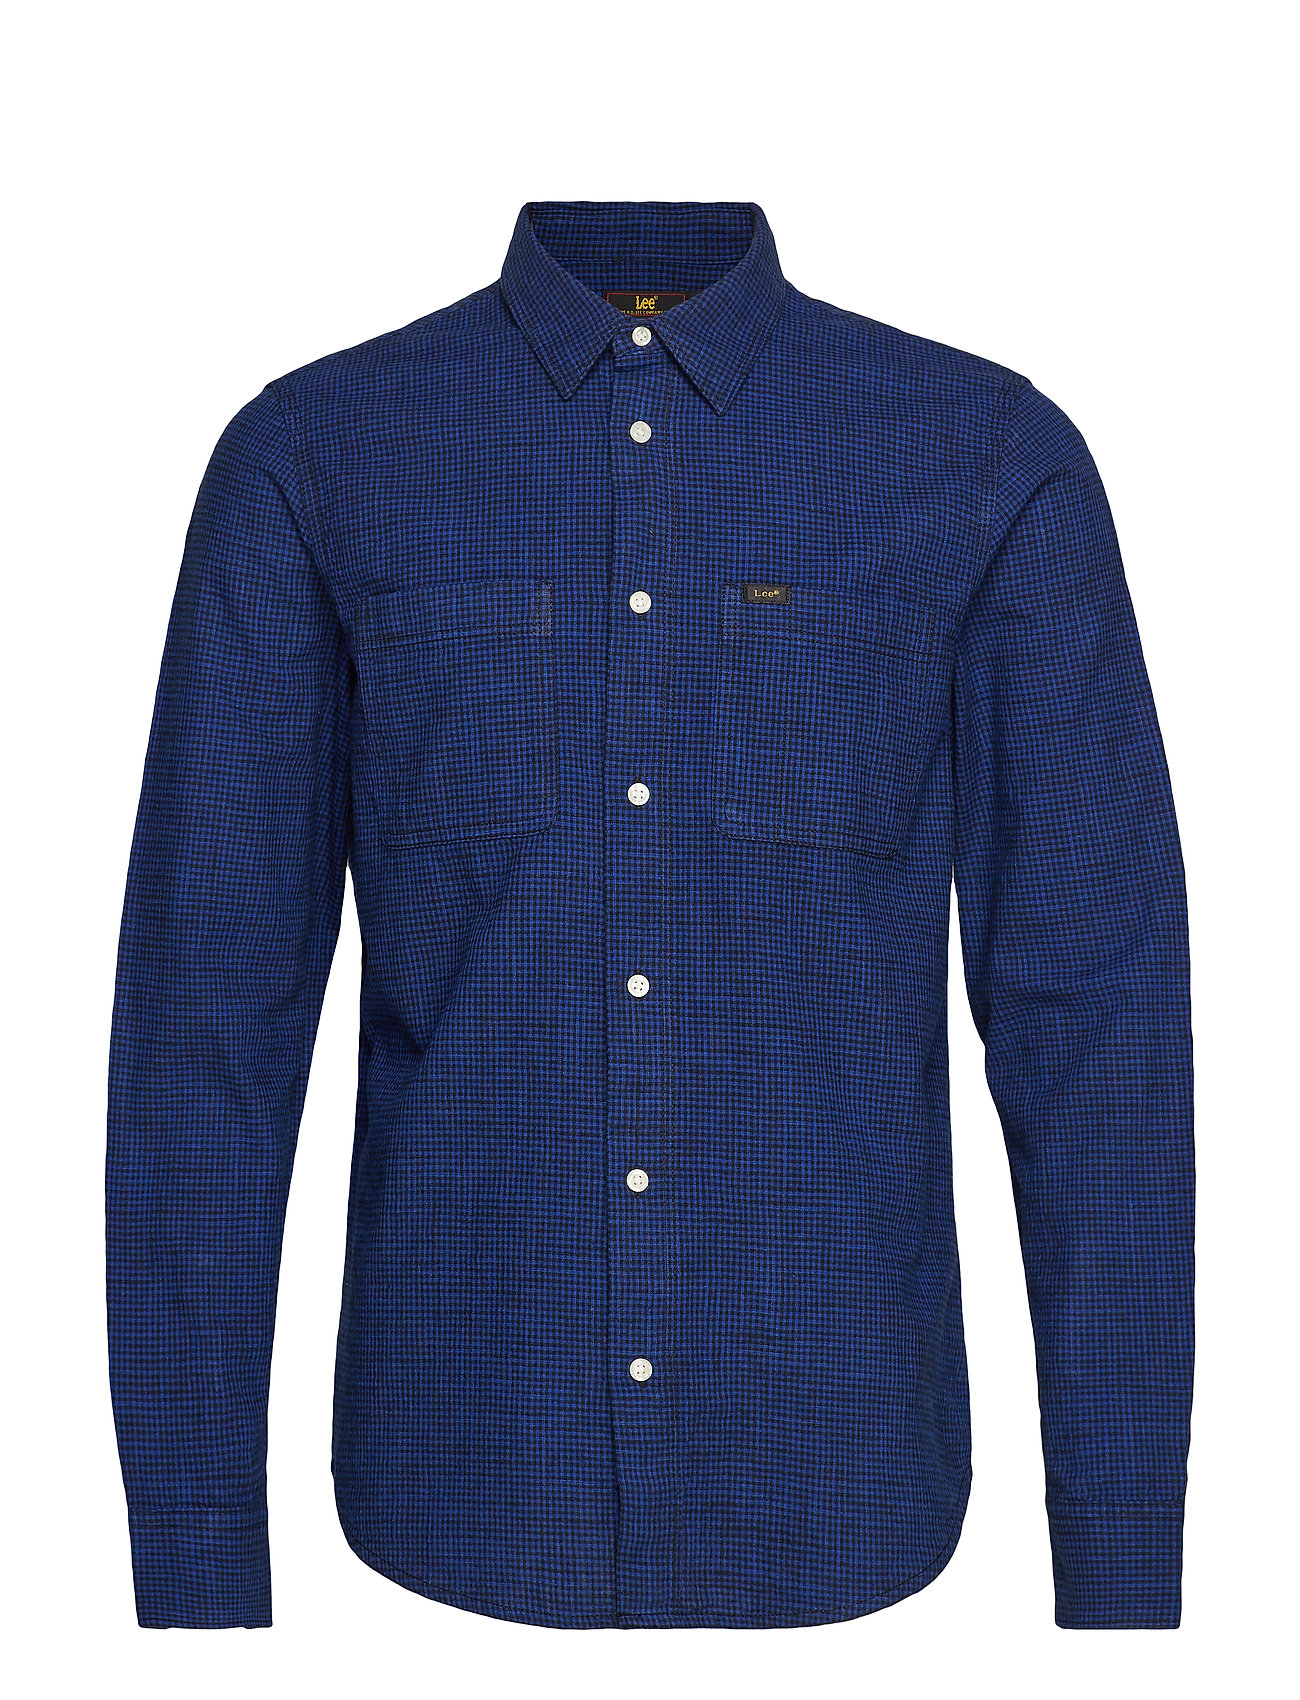 BlueLee Jeans Shirtfrench Shirtfrench BlueLee BlueLee Jeans Worker Shirtfrench Worker Worker rxWEQdBoCe